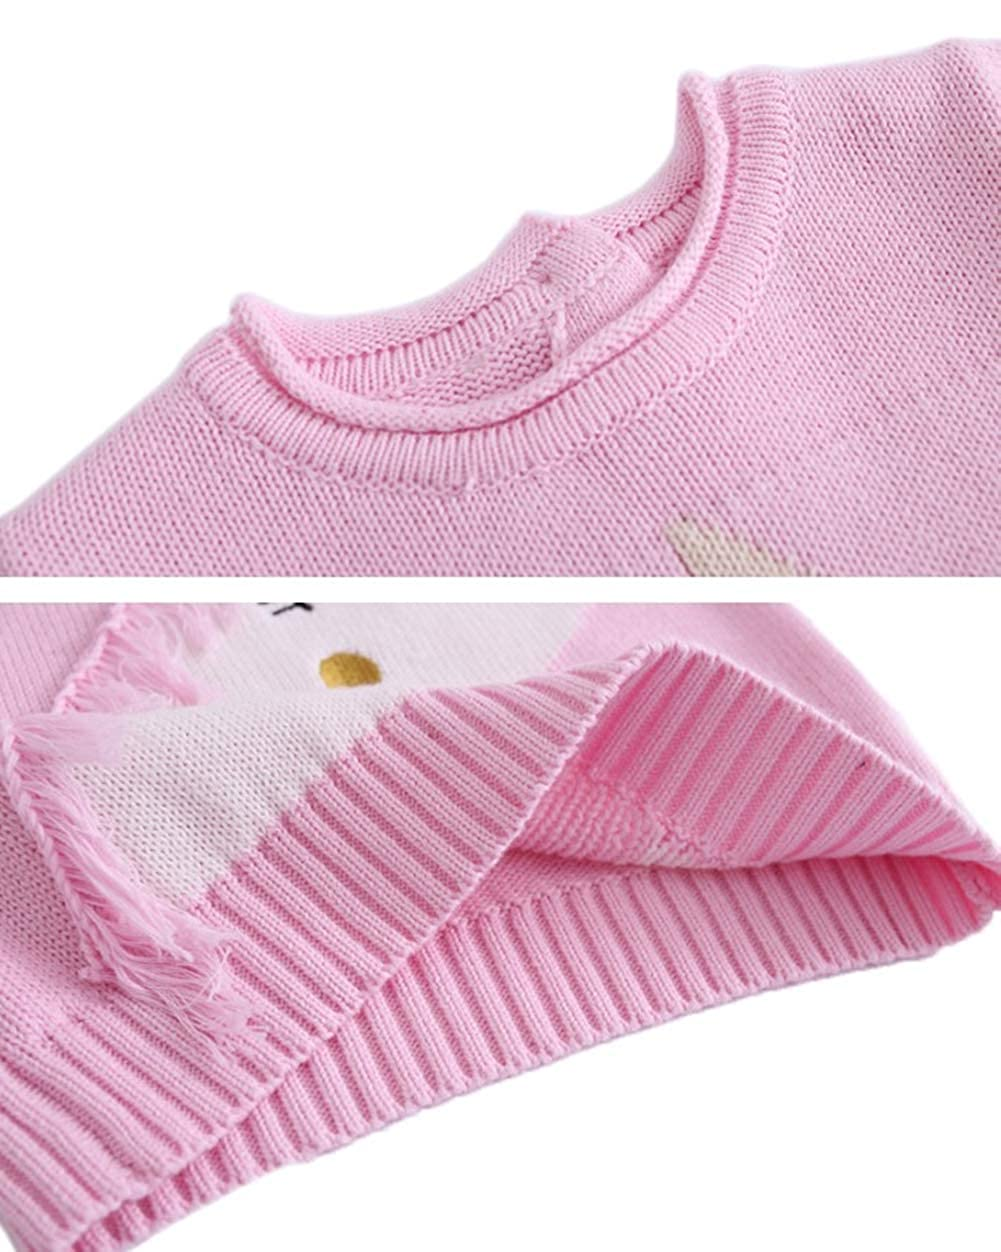 Toddler Baby Girls Pullover Sweater Kid Boys Cute Unicorn Knit Sweatshirt 1-6t